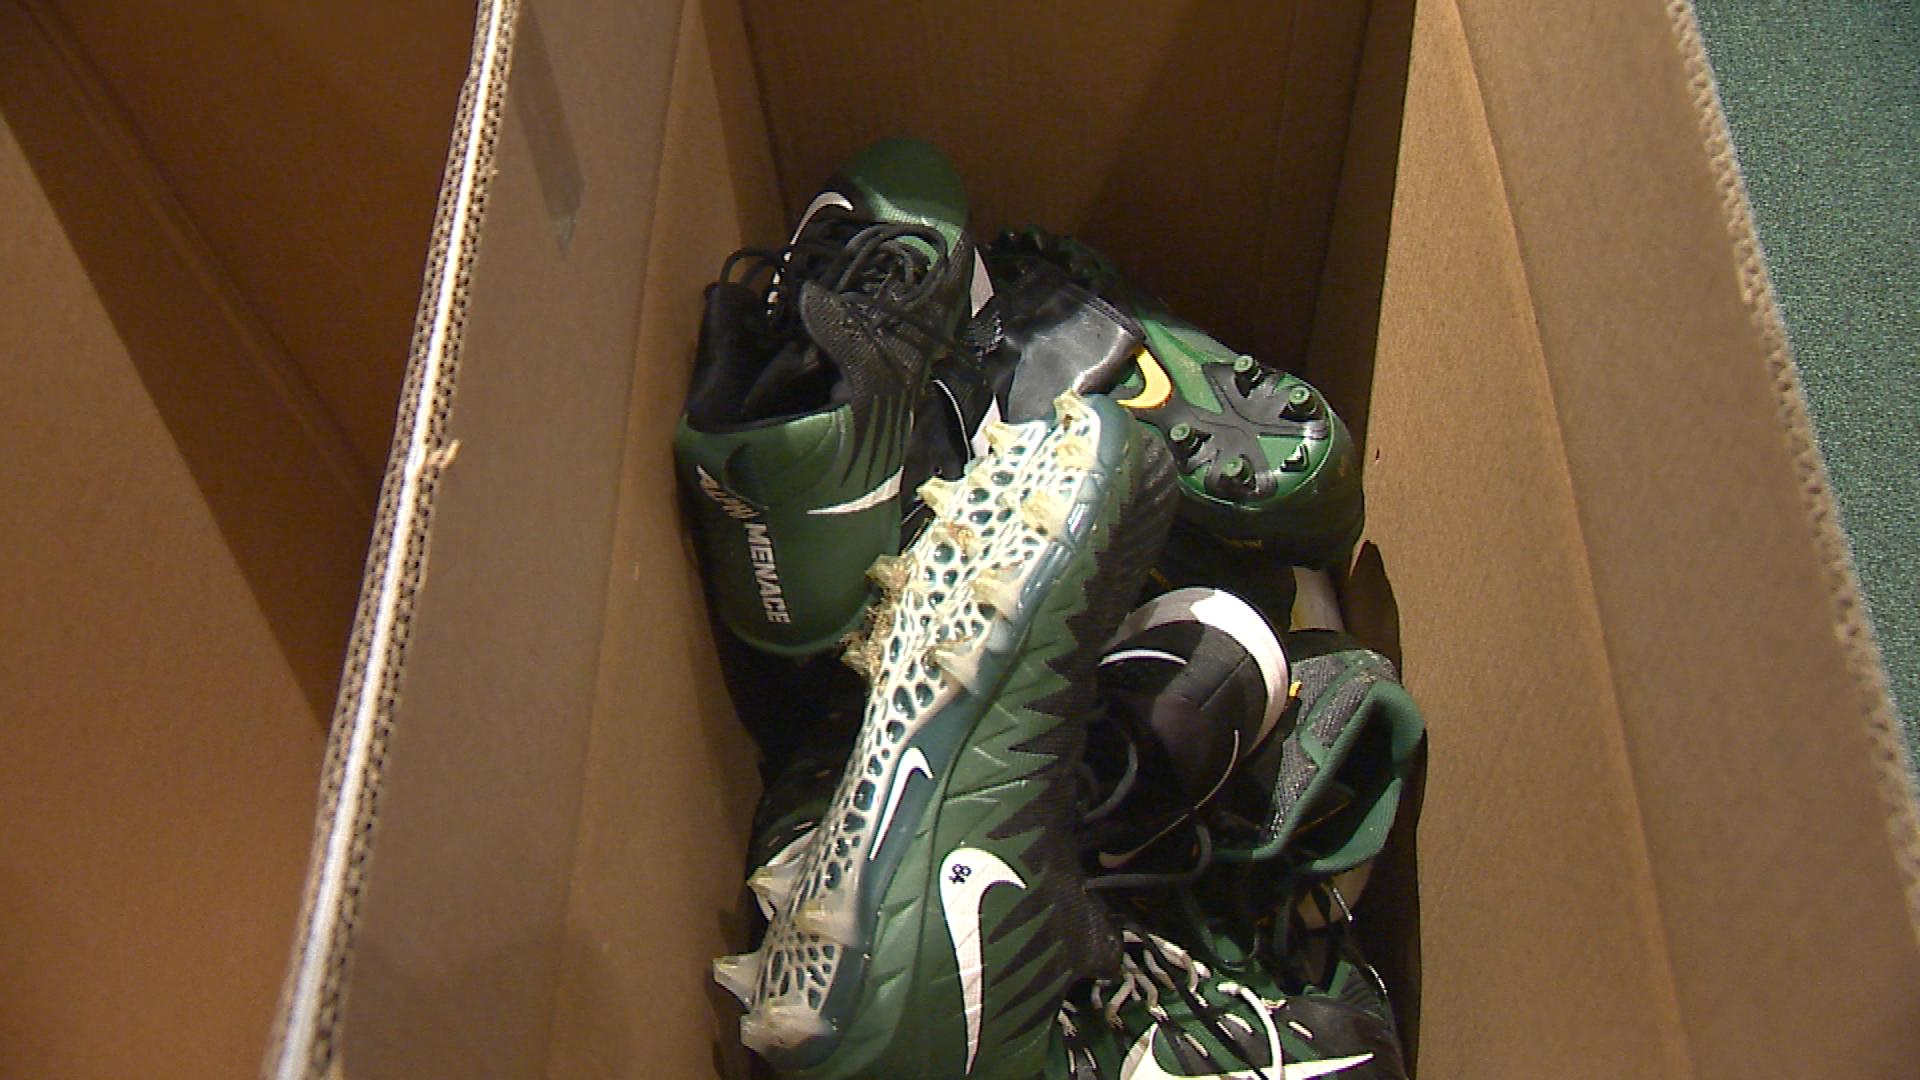 Green Bay Packers players donate their cleats at Lambeau Field Jan. 2, 2018. (WLUK image)<p></p>